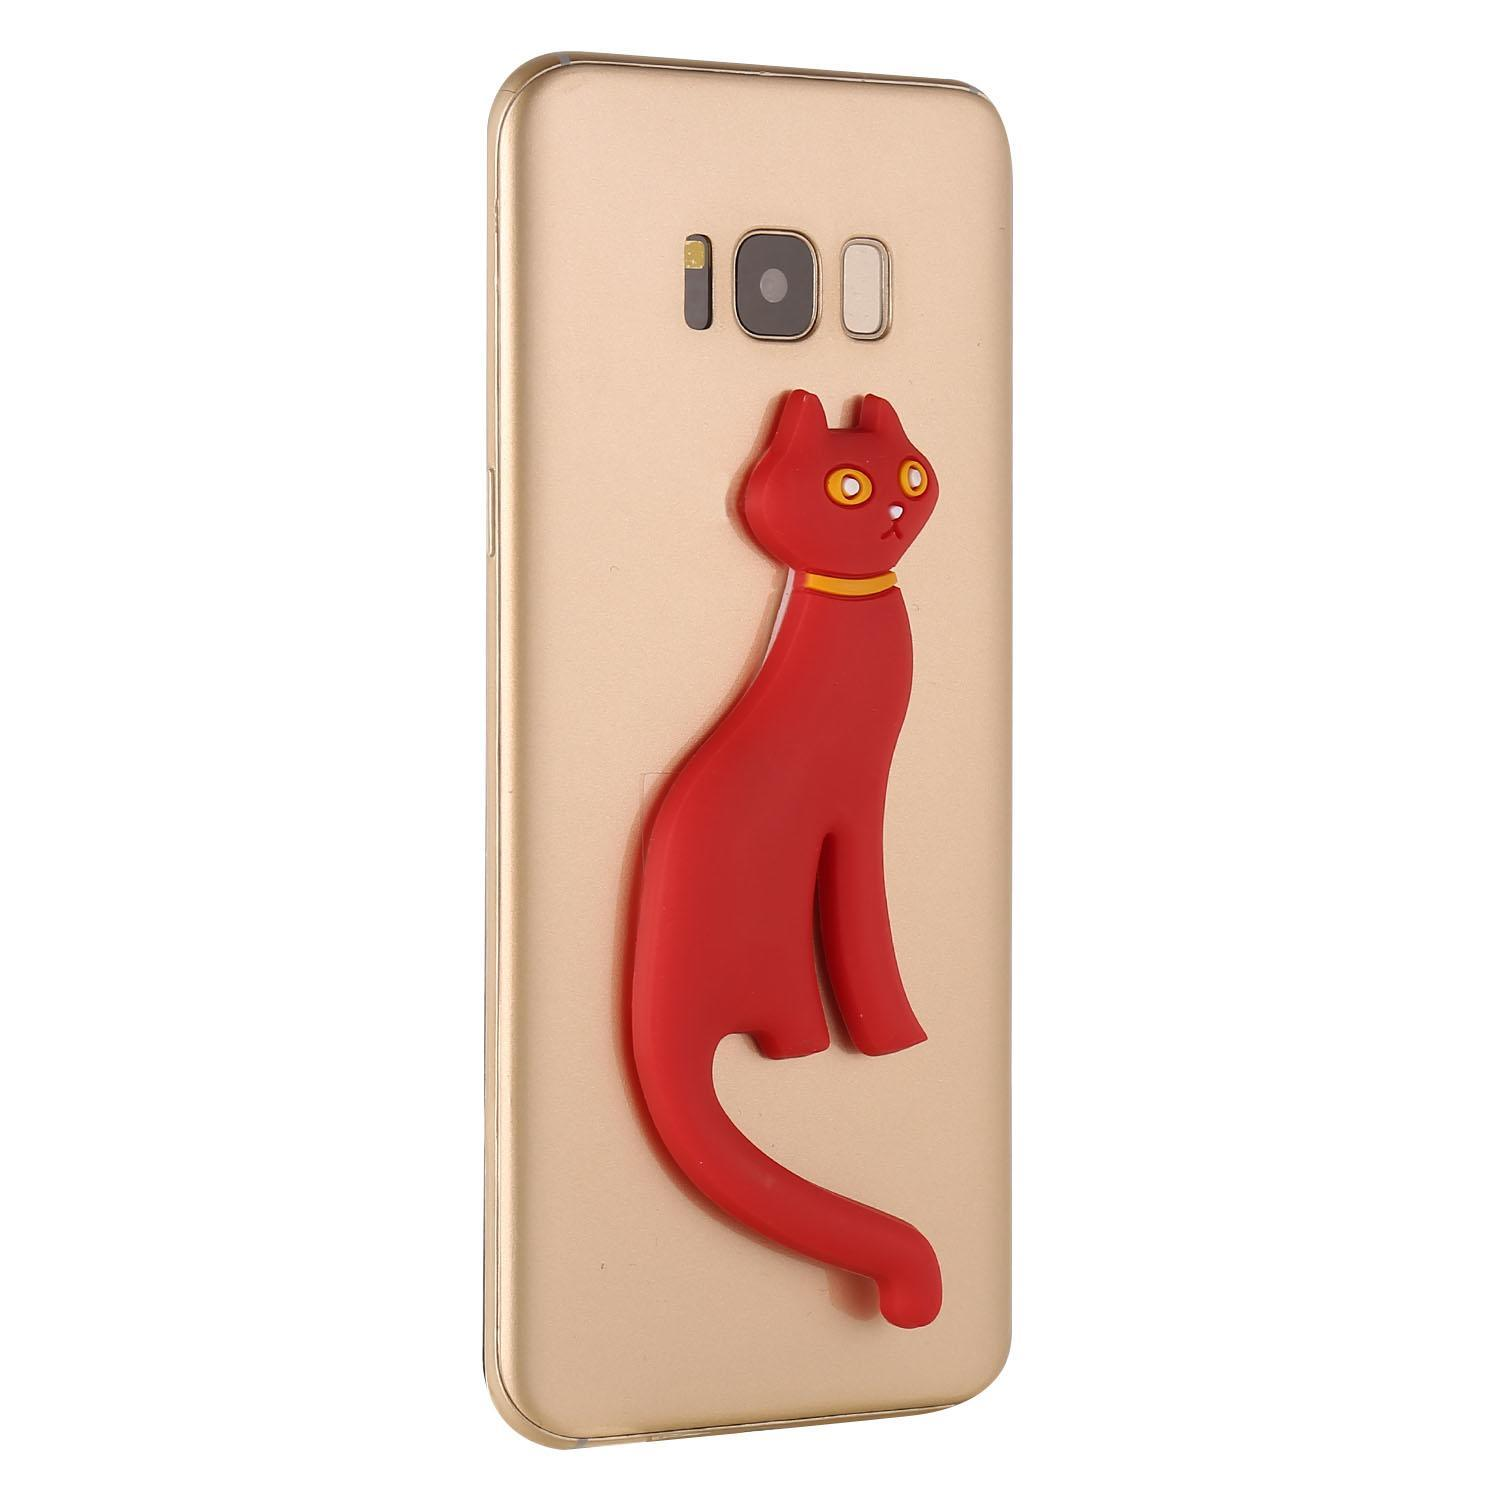 Cute Cat Silicone Phone Stand Mount Holder Stent Caroj - image 2 of 5